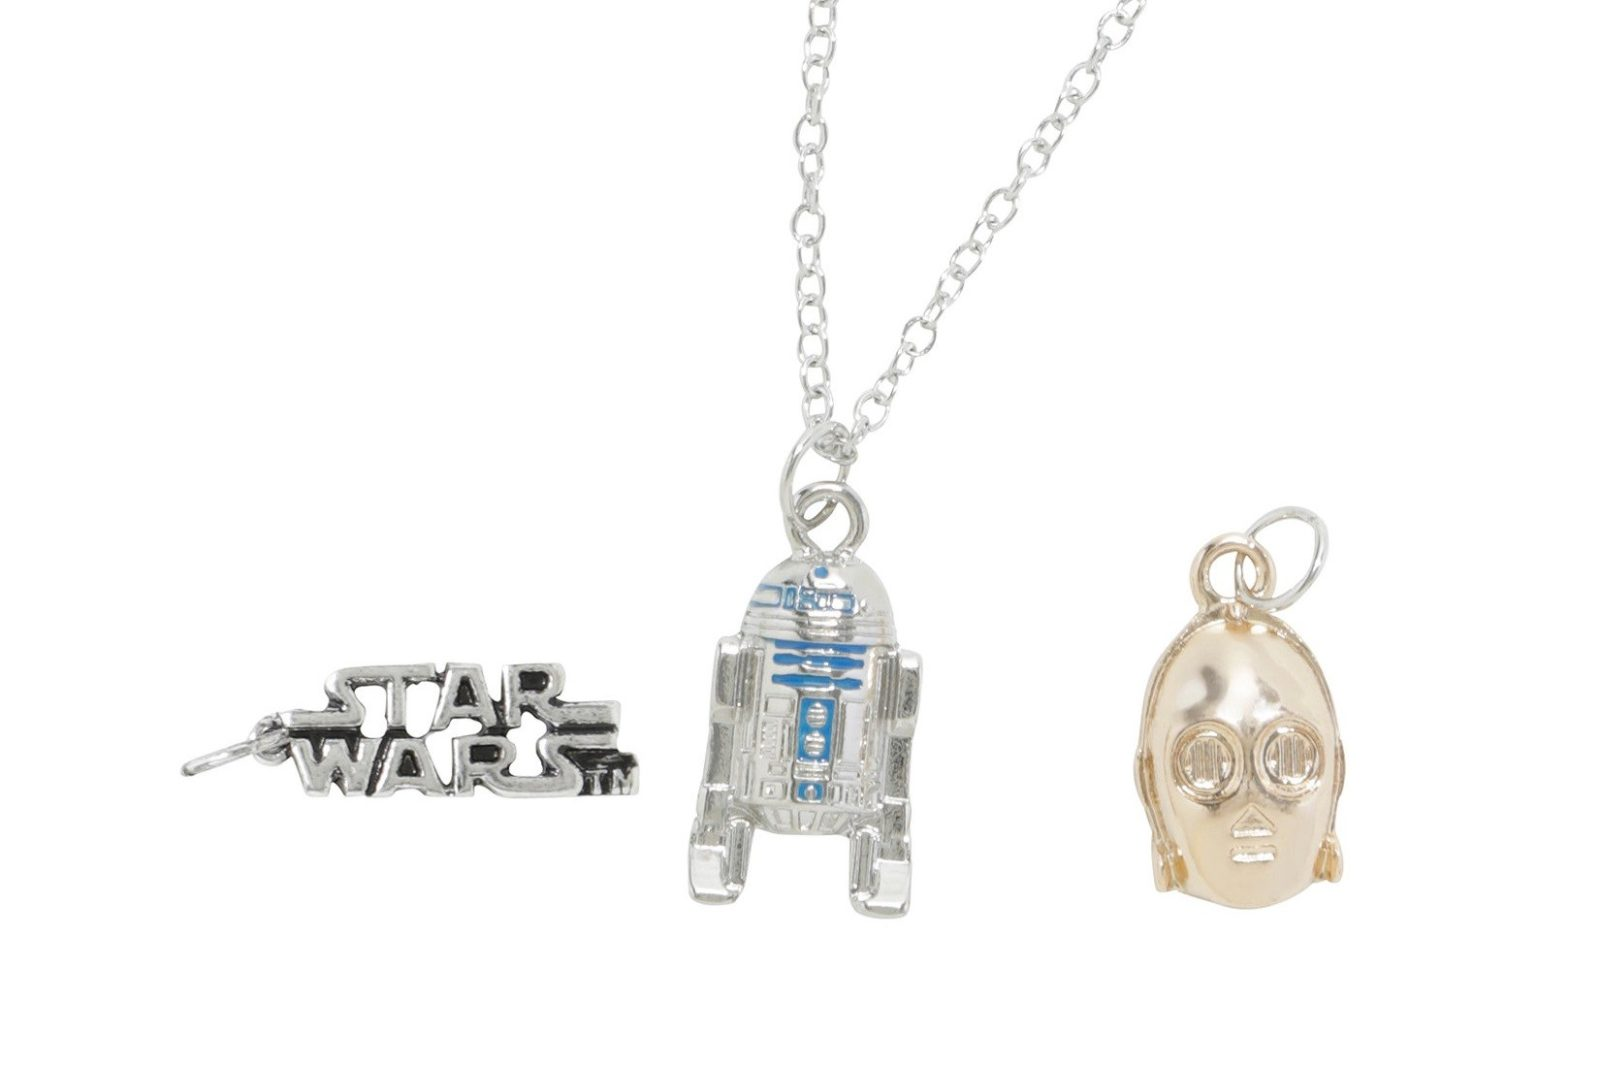 New Star Wars droids charm necklace